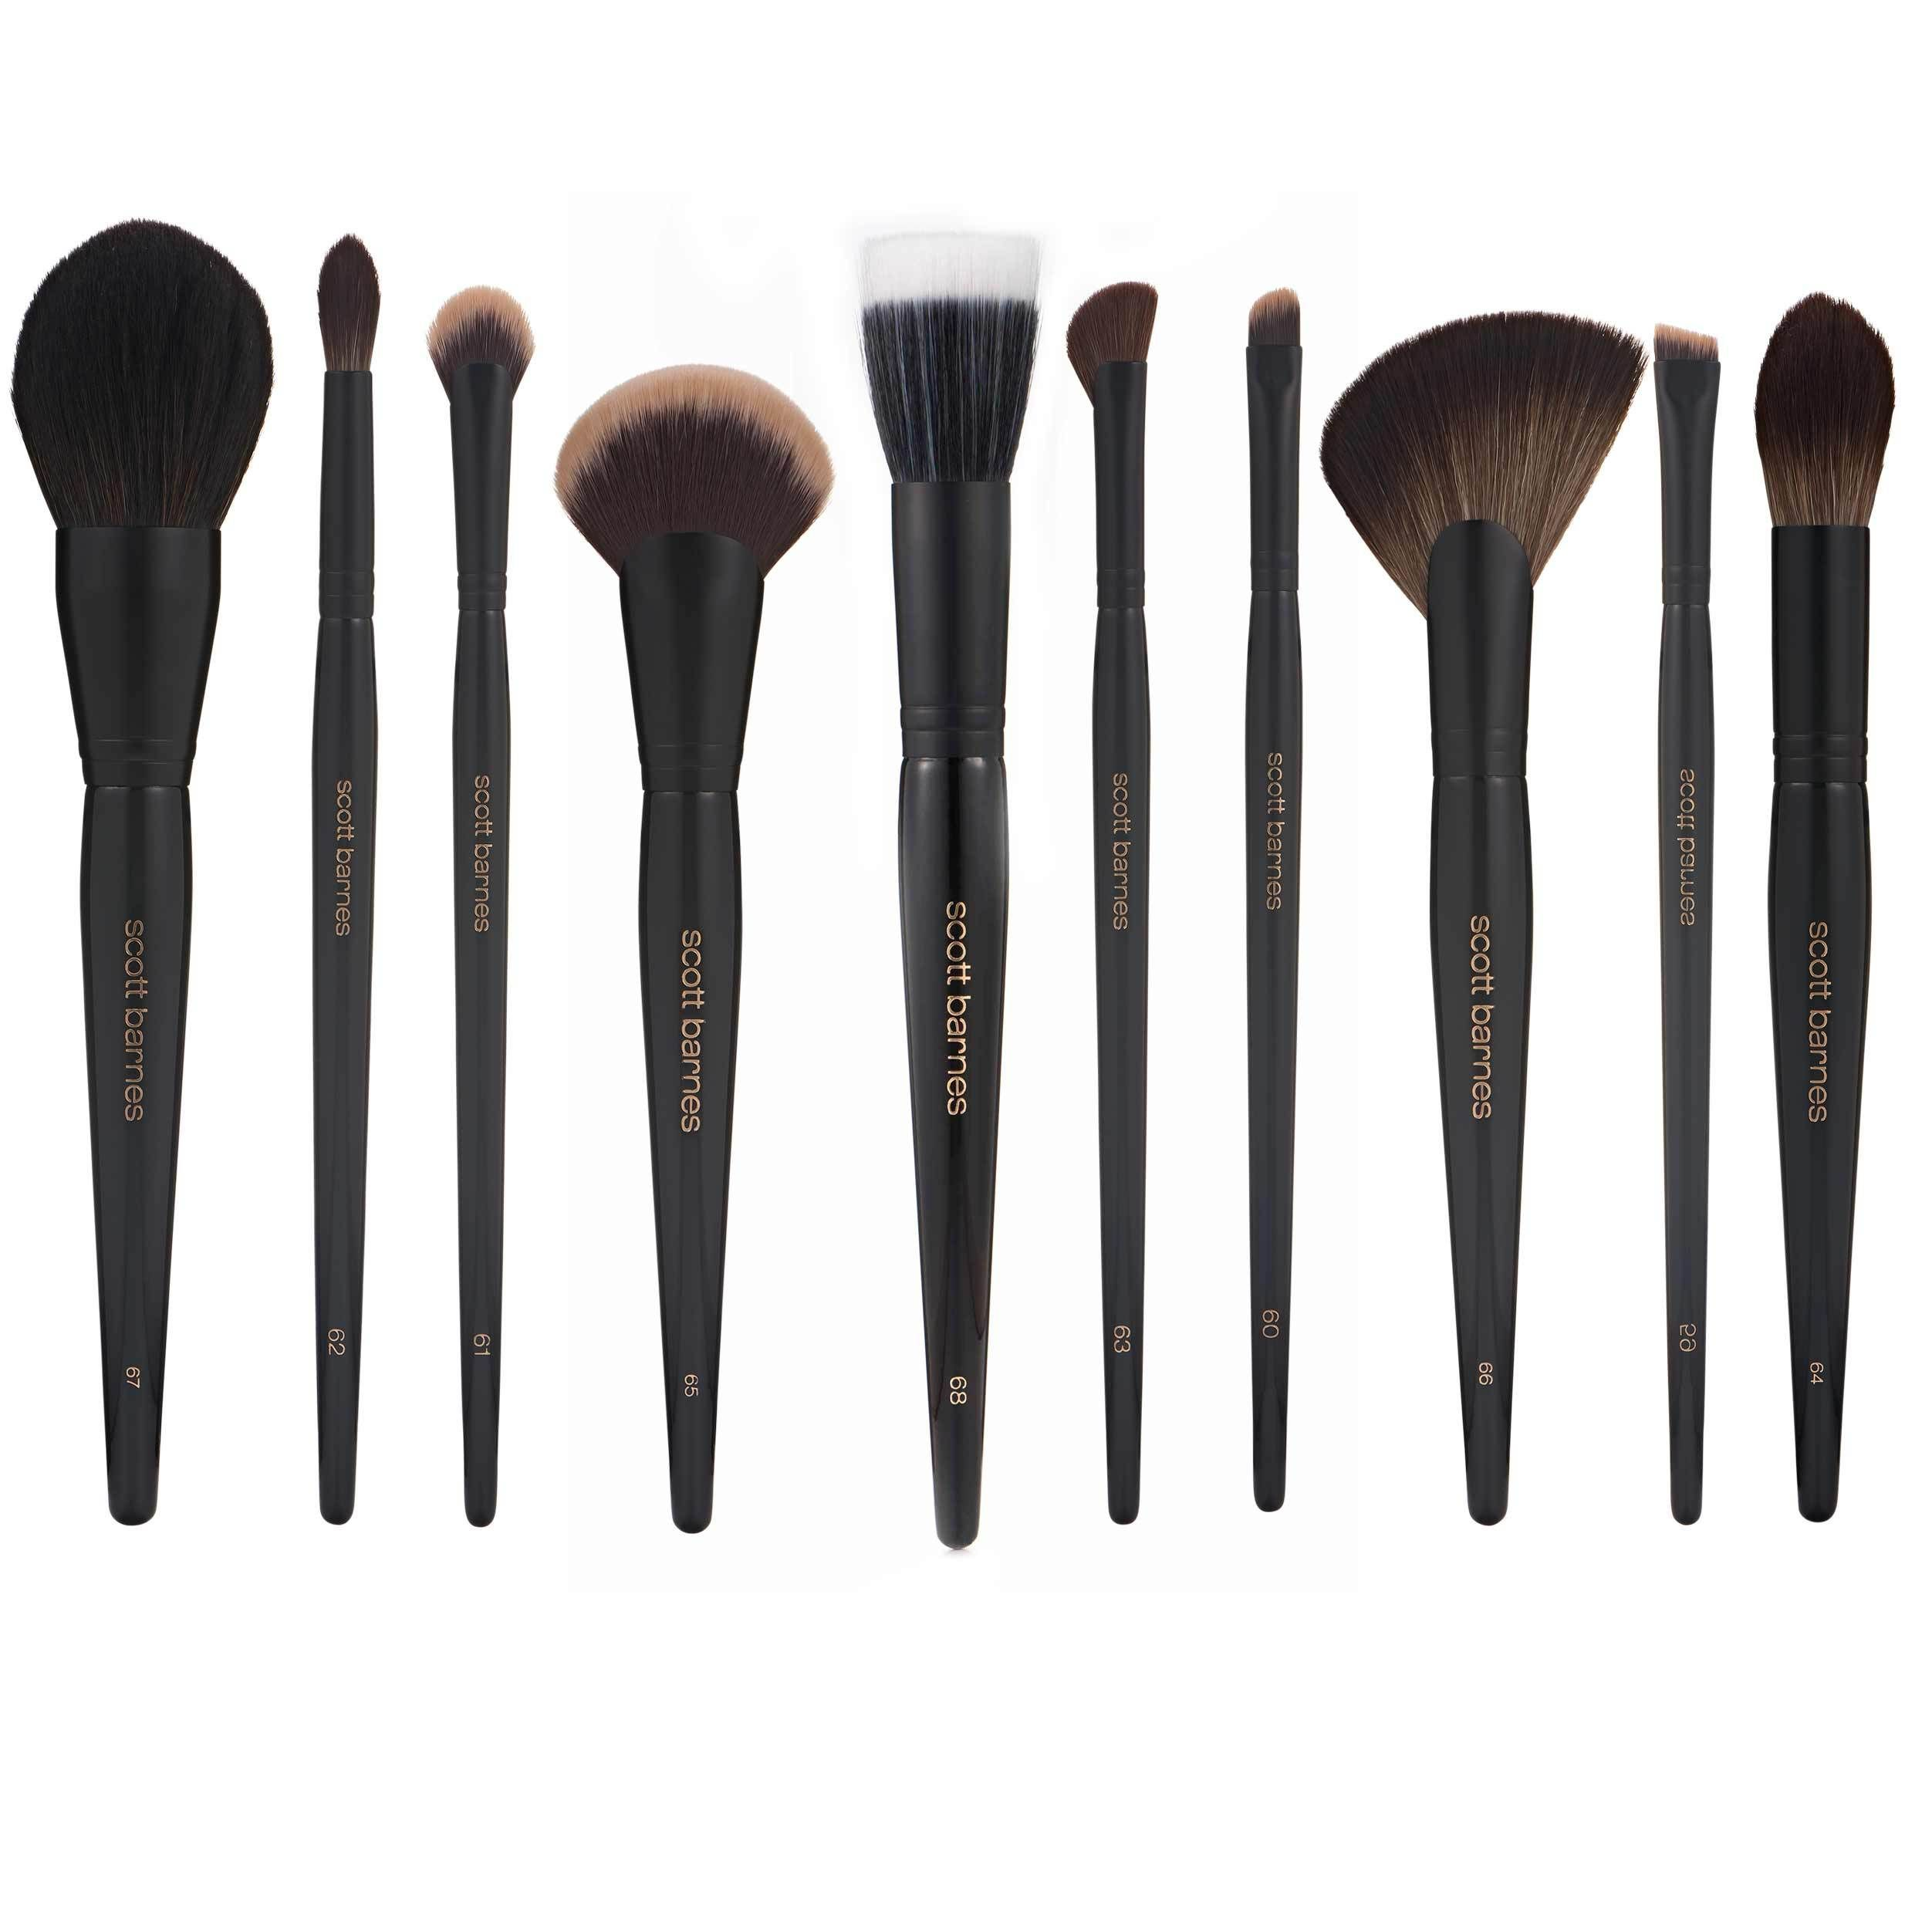 The Complete Pro Series Set 10 Brushes How to clean